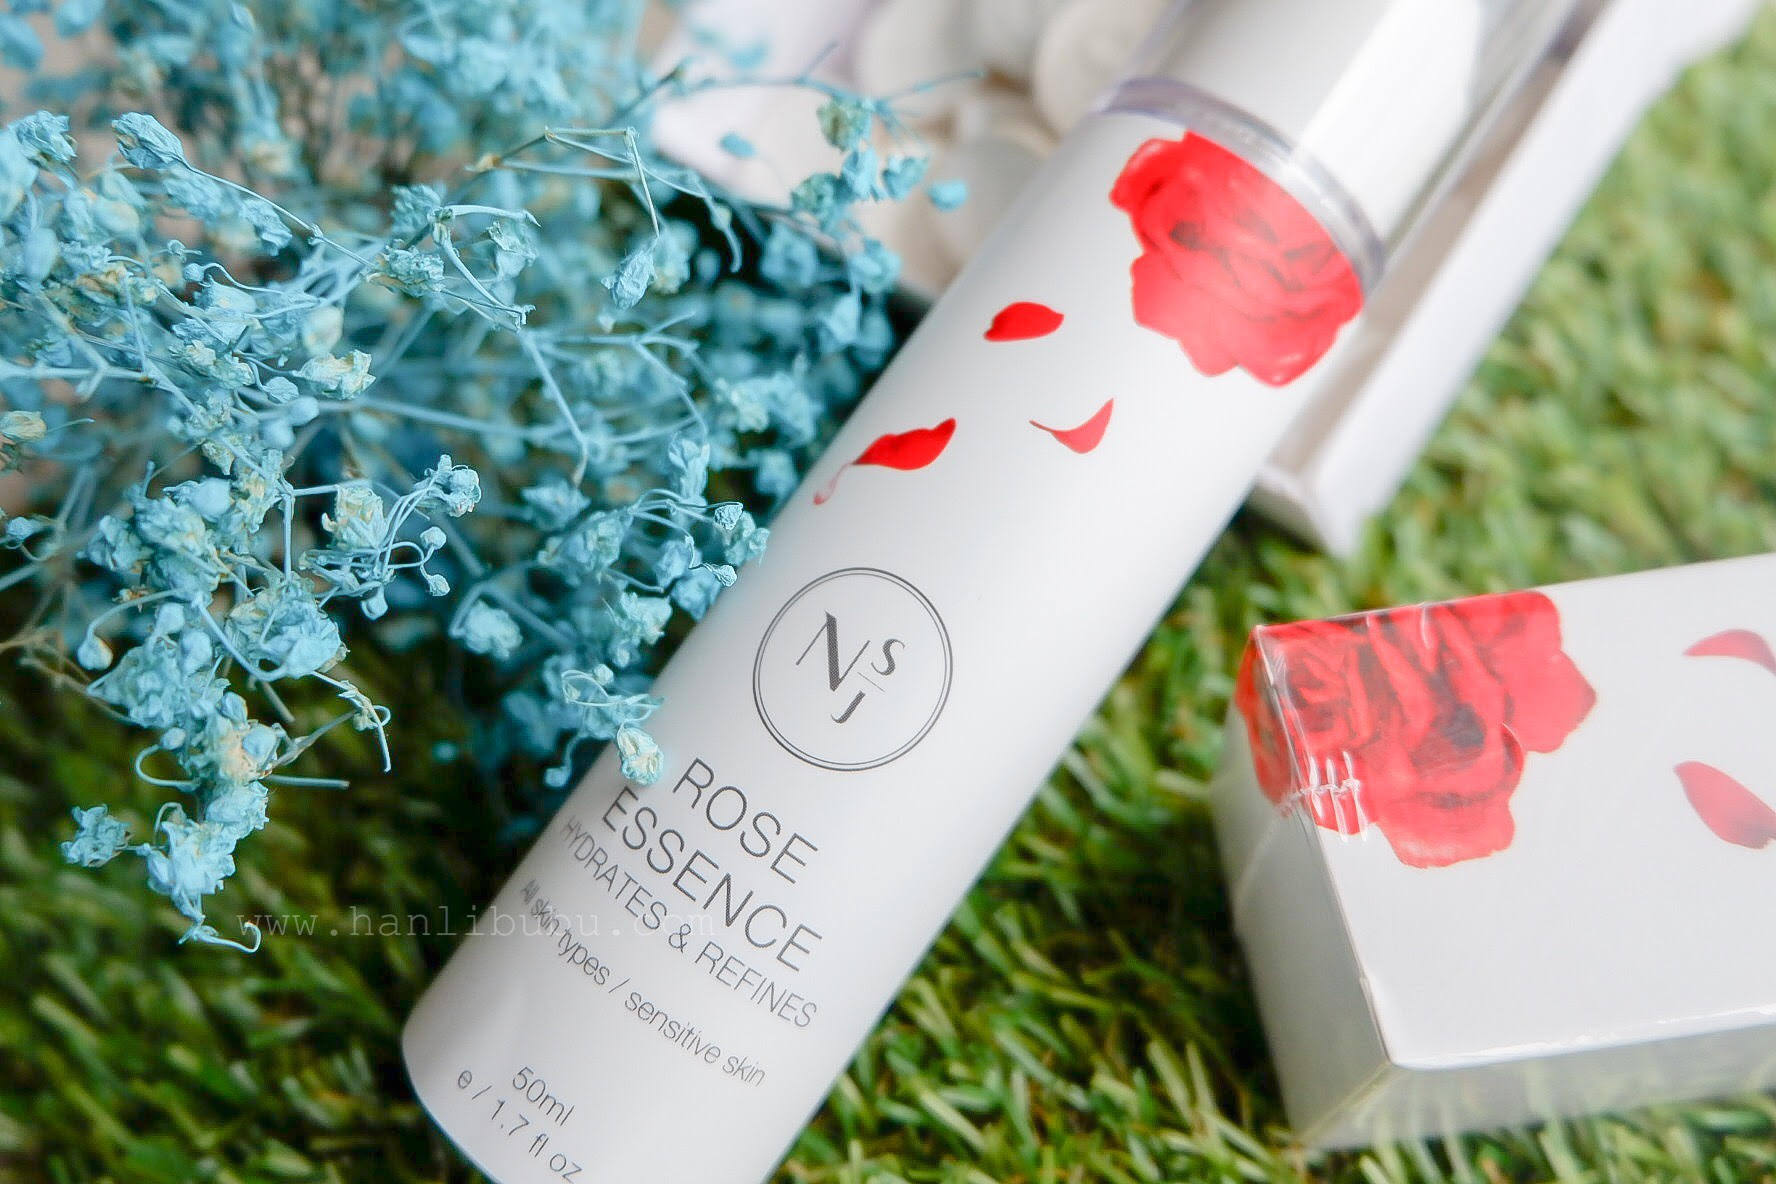 NSJJJ - Find Out How Roses Can Make Wonders To Your Skin!